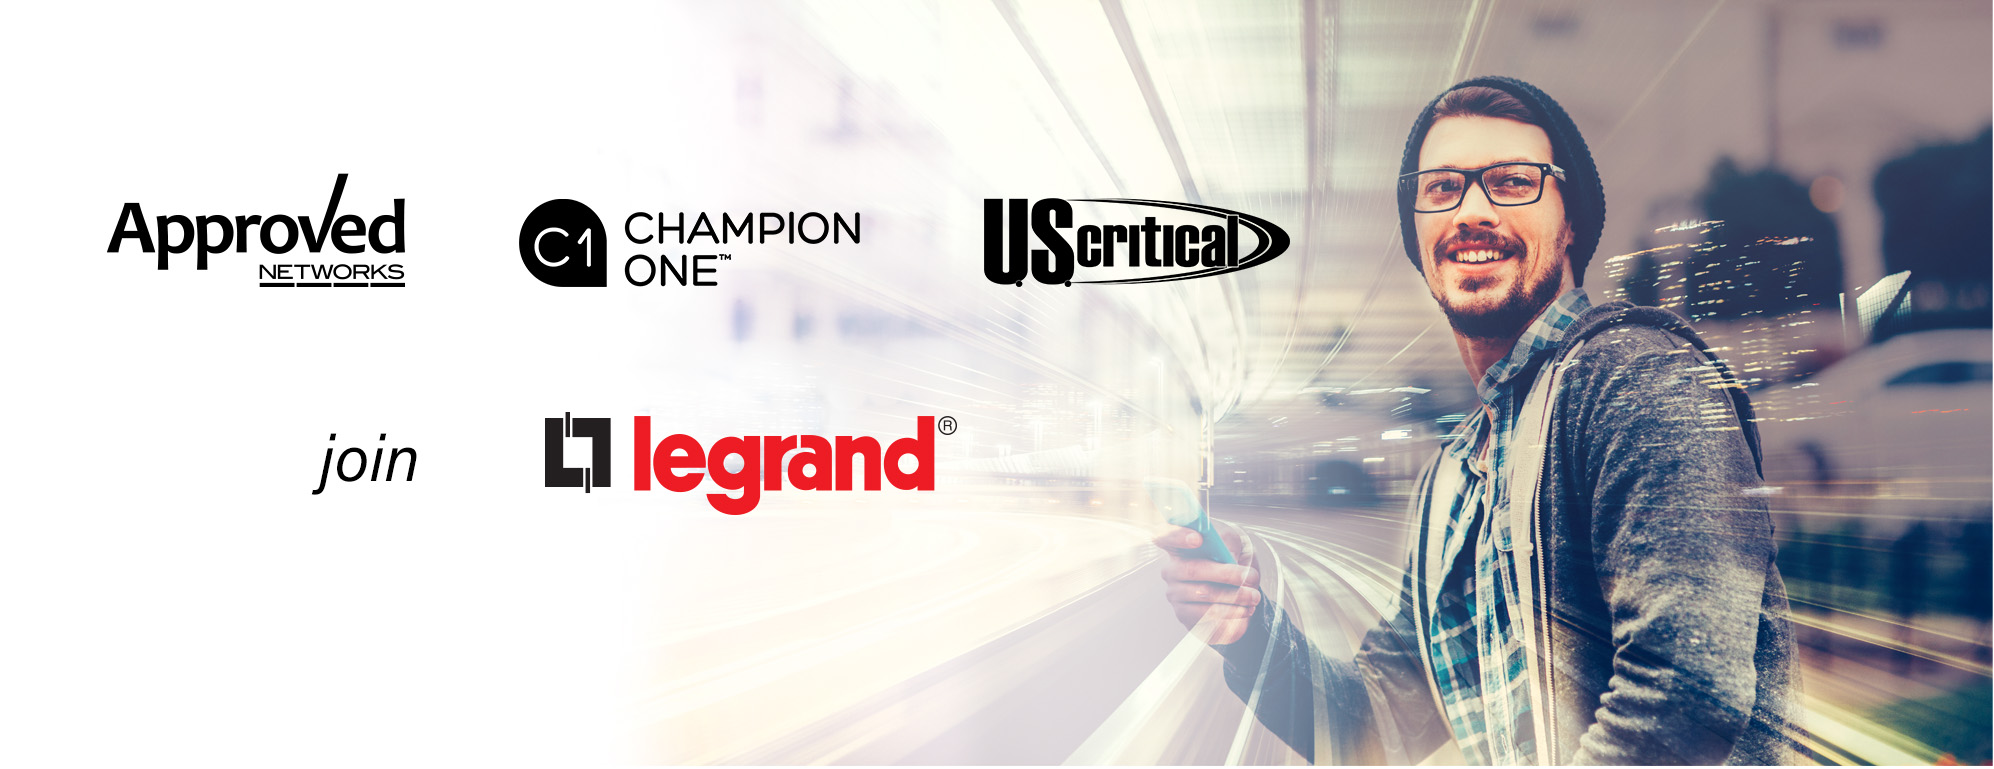 banner-press-release-approved-networks-joins-legrand.jpg